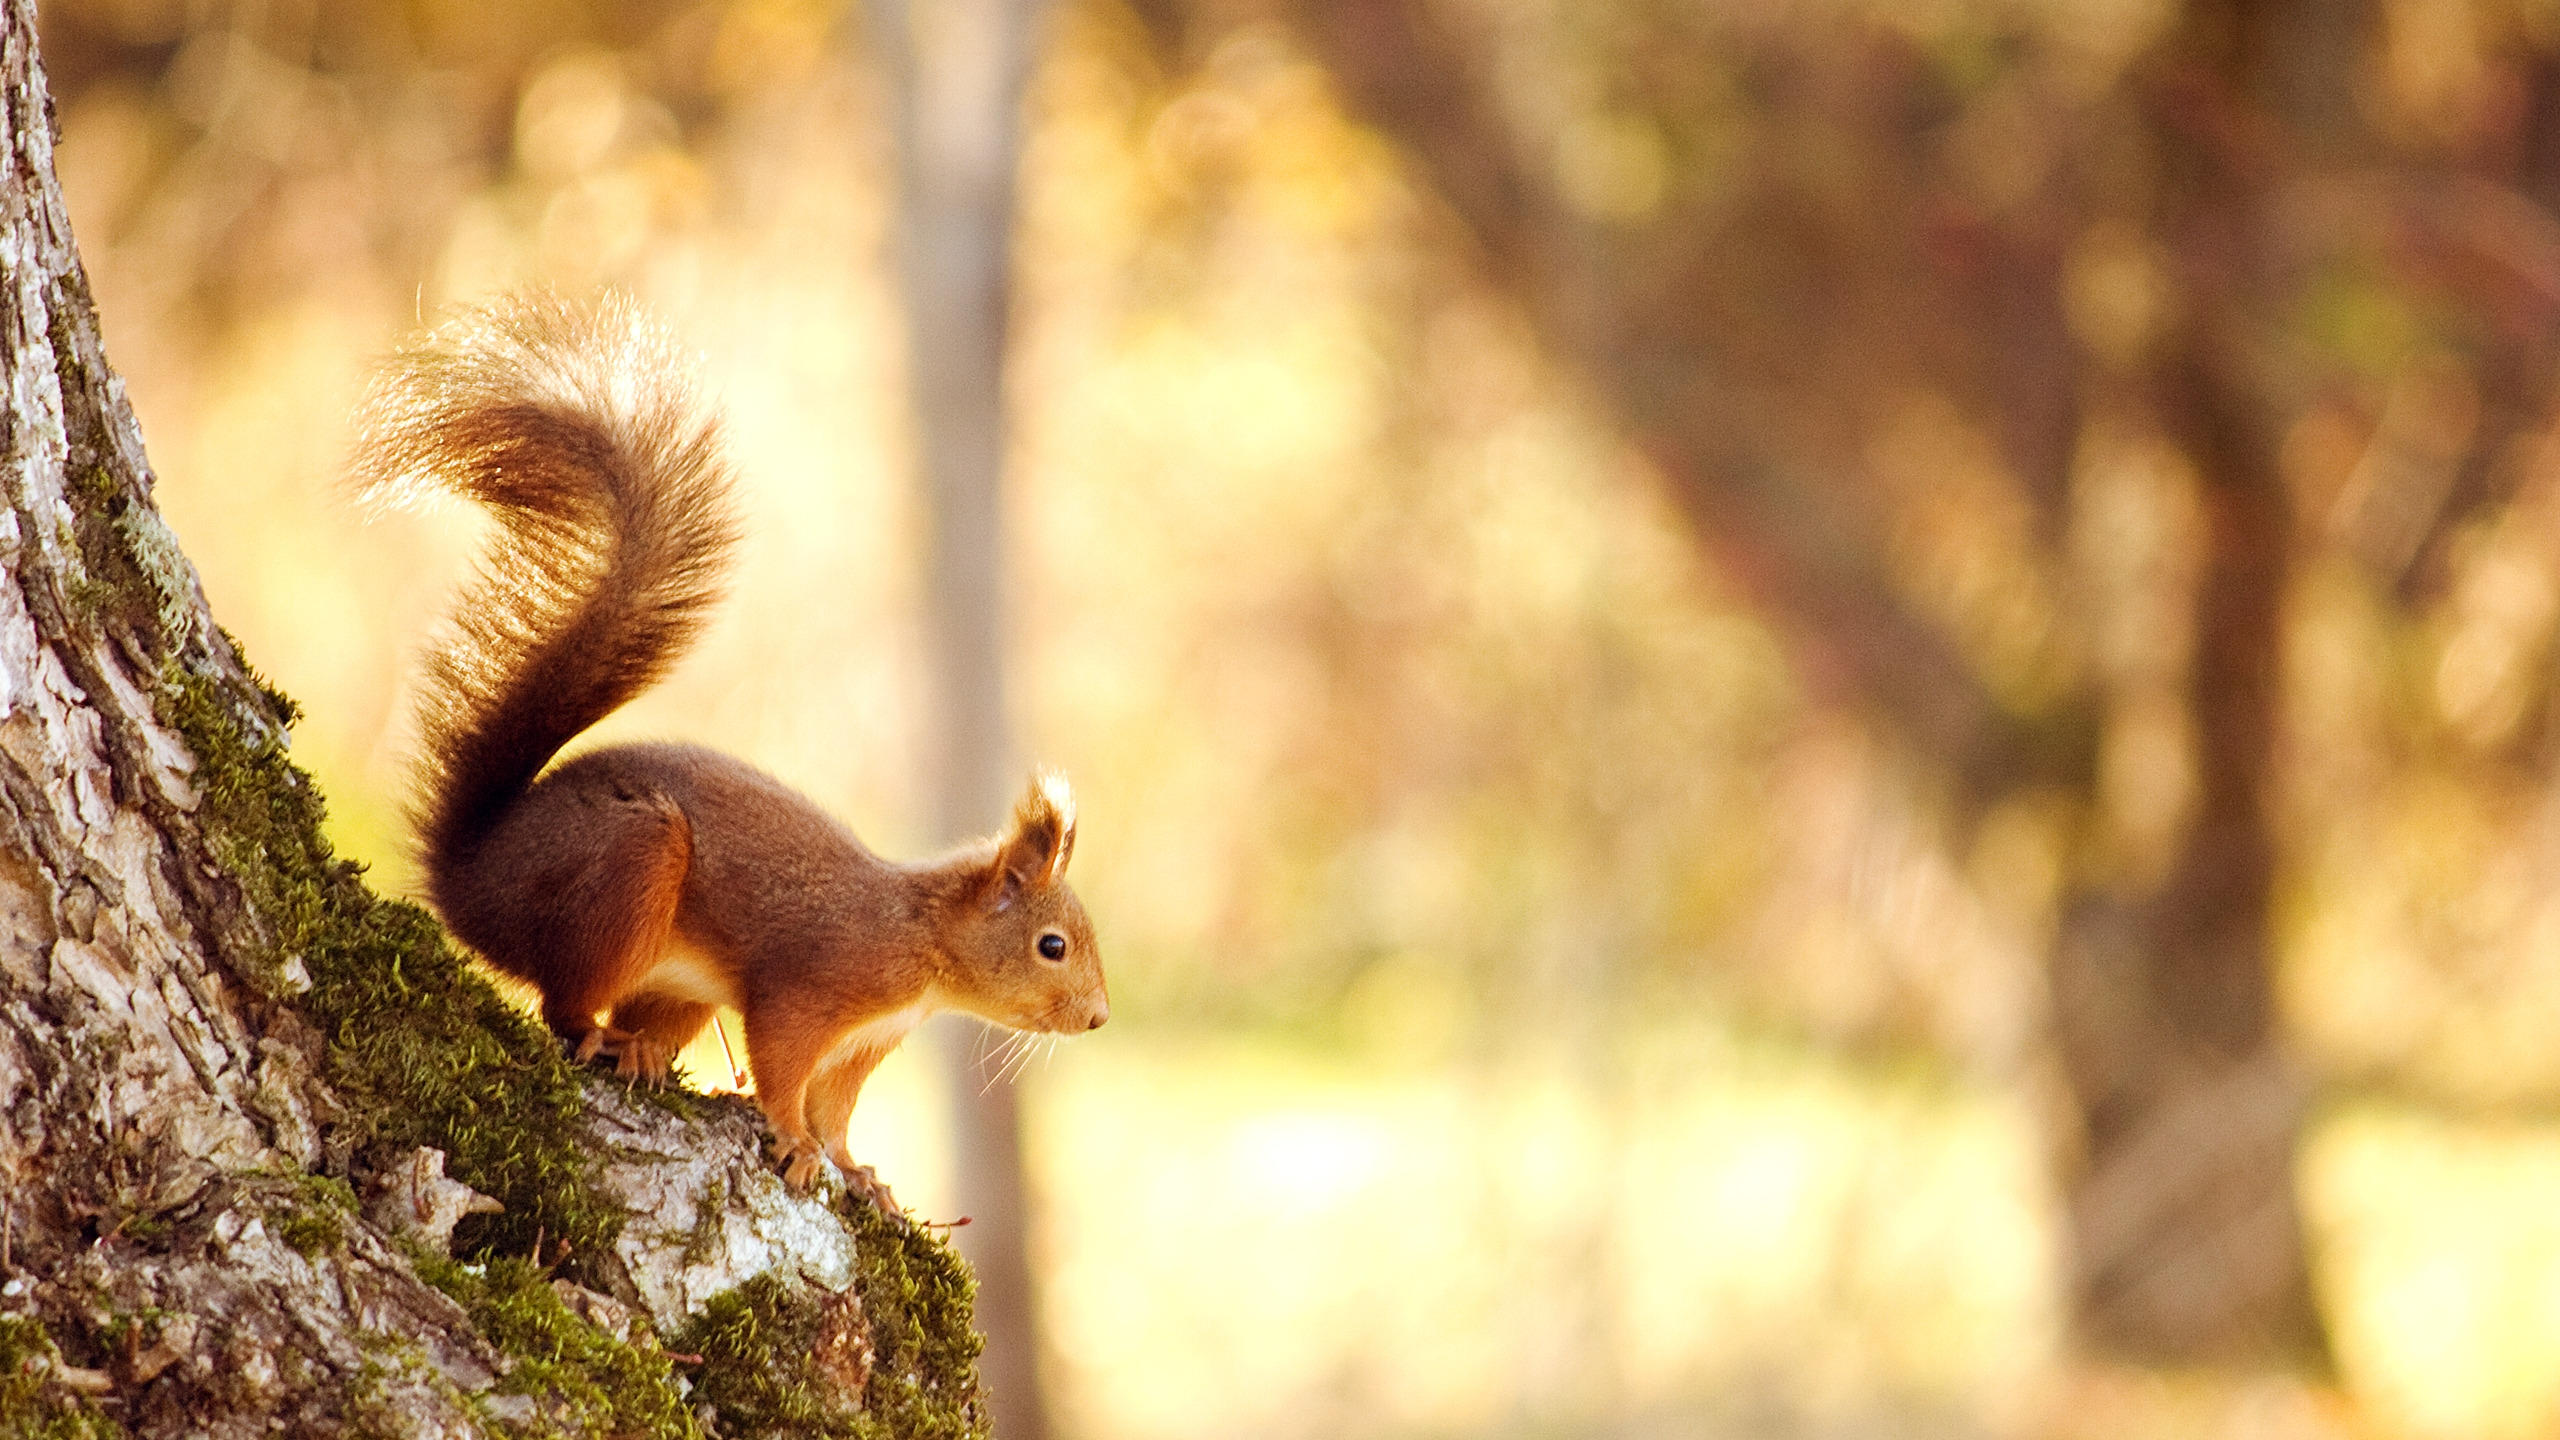 squirrel-in-the-autumn-wallpapers_45387_2560x1440.jpg